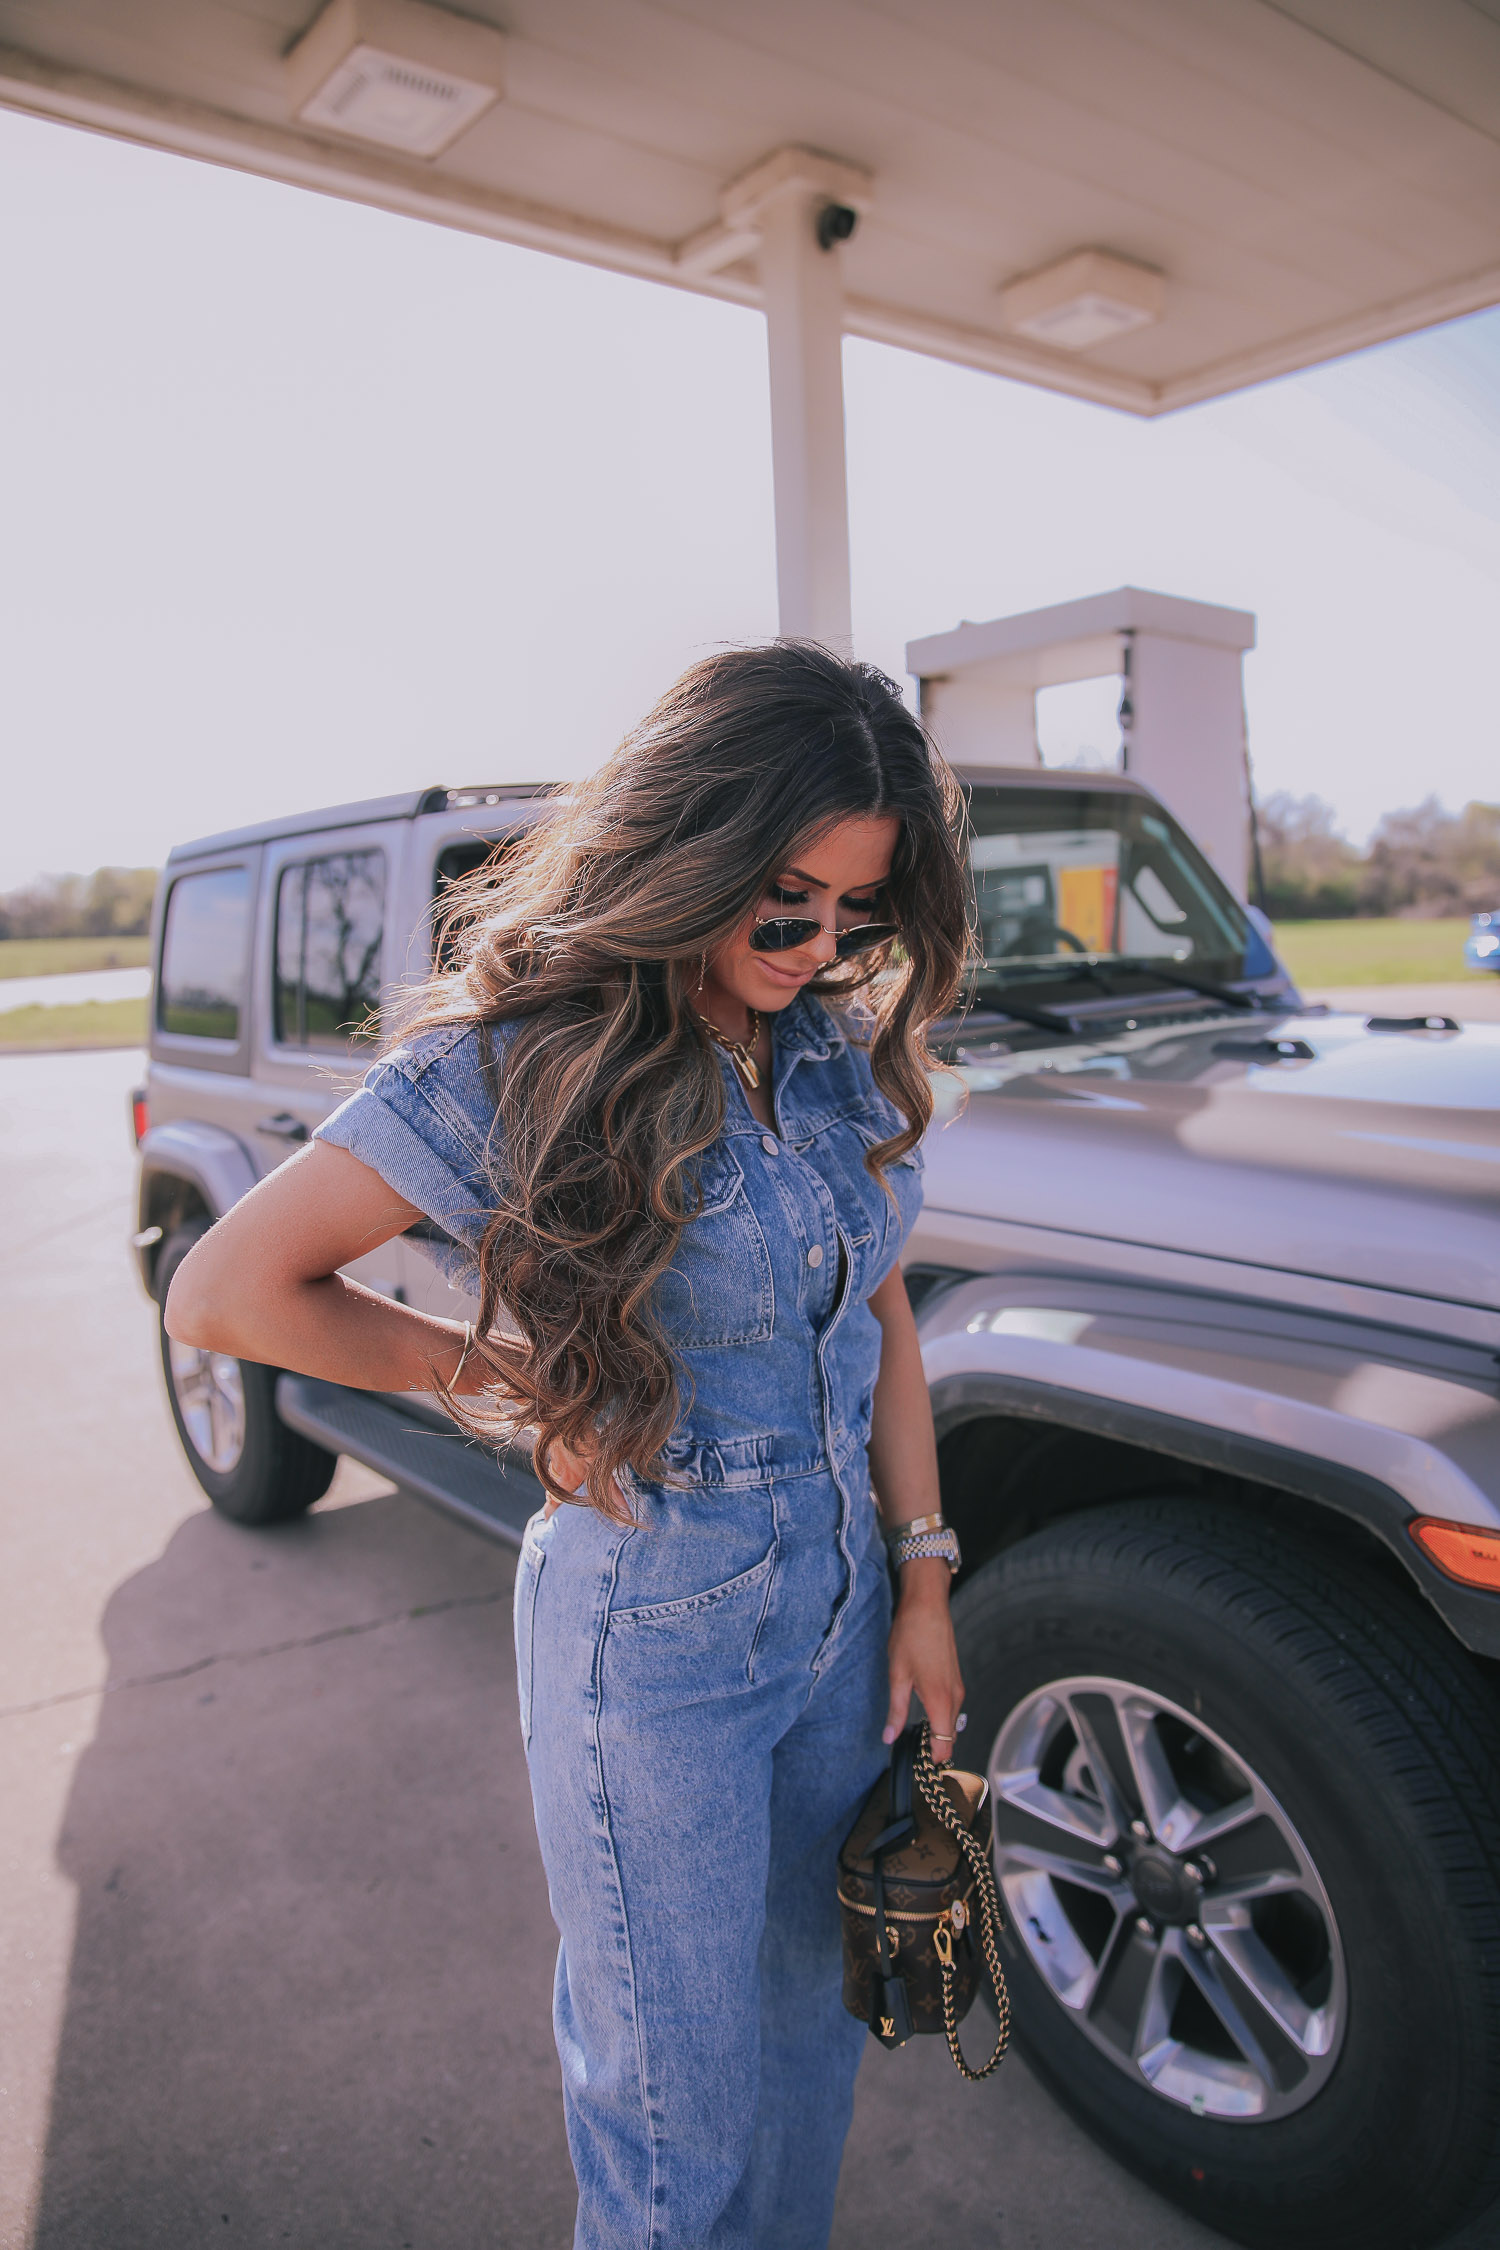 denim jumpsuit, free people denim jumpsuit coverall, emily ann gemma, spring fashion 2020, pinterest spring summer fashion 2020 | Denim Jumpsuit Outfit by popular US fashion blog, The Sweetest Thing: image of Emily Gemma standing in front of a Jeep at a gas station and wearing a Free People Marci Coverall, Cartier rings, Rolex watch, Nordstrom 50mm Retro Inspired Round Metal Sunglasses RAY-BAN, Nordstrom Skyla Slide Sandal TOPSHOP, Ulta KKW BEAUTY  Nude Lip Liner, Nordstrom Hot Lips Lipstick CHARLOTTE TILBURY, and Nordstrom Gloss Luxe Moisturizing Lipgloss TOM FORD.